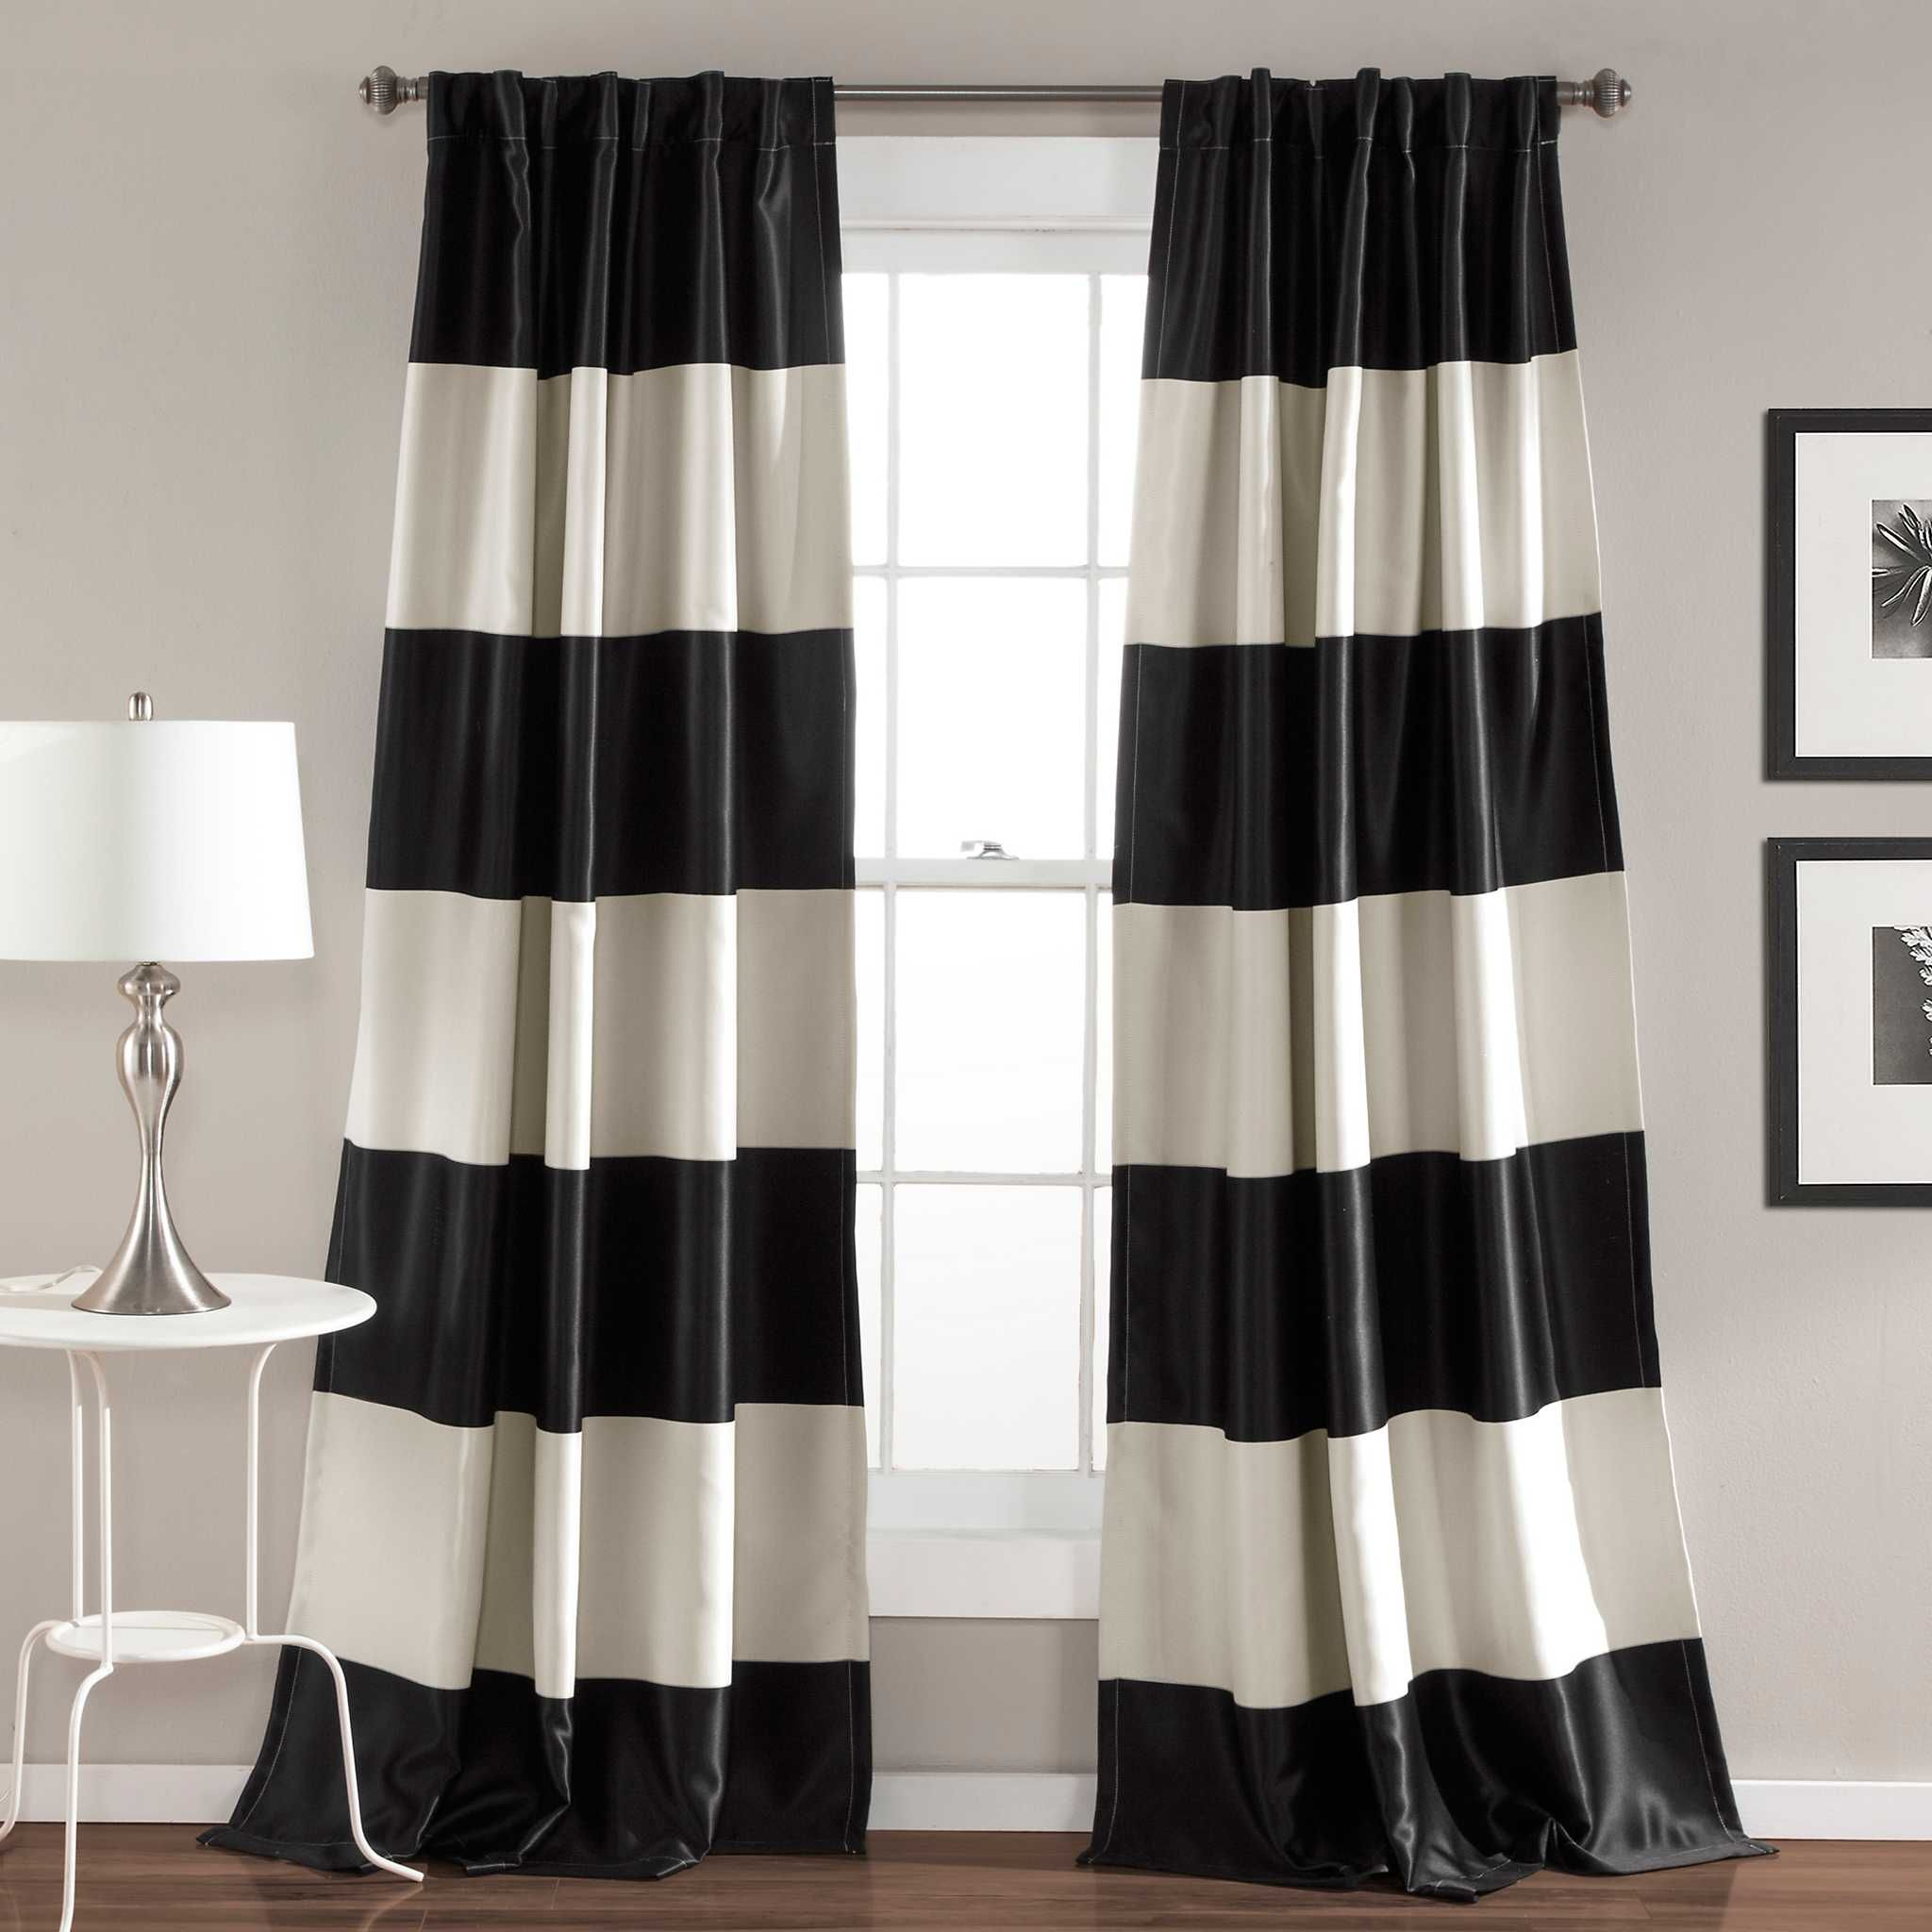 Black Montego Stripe Curtain Panel Set, 84 In - Kirklands